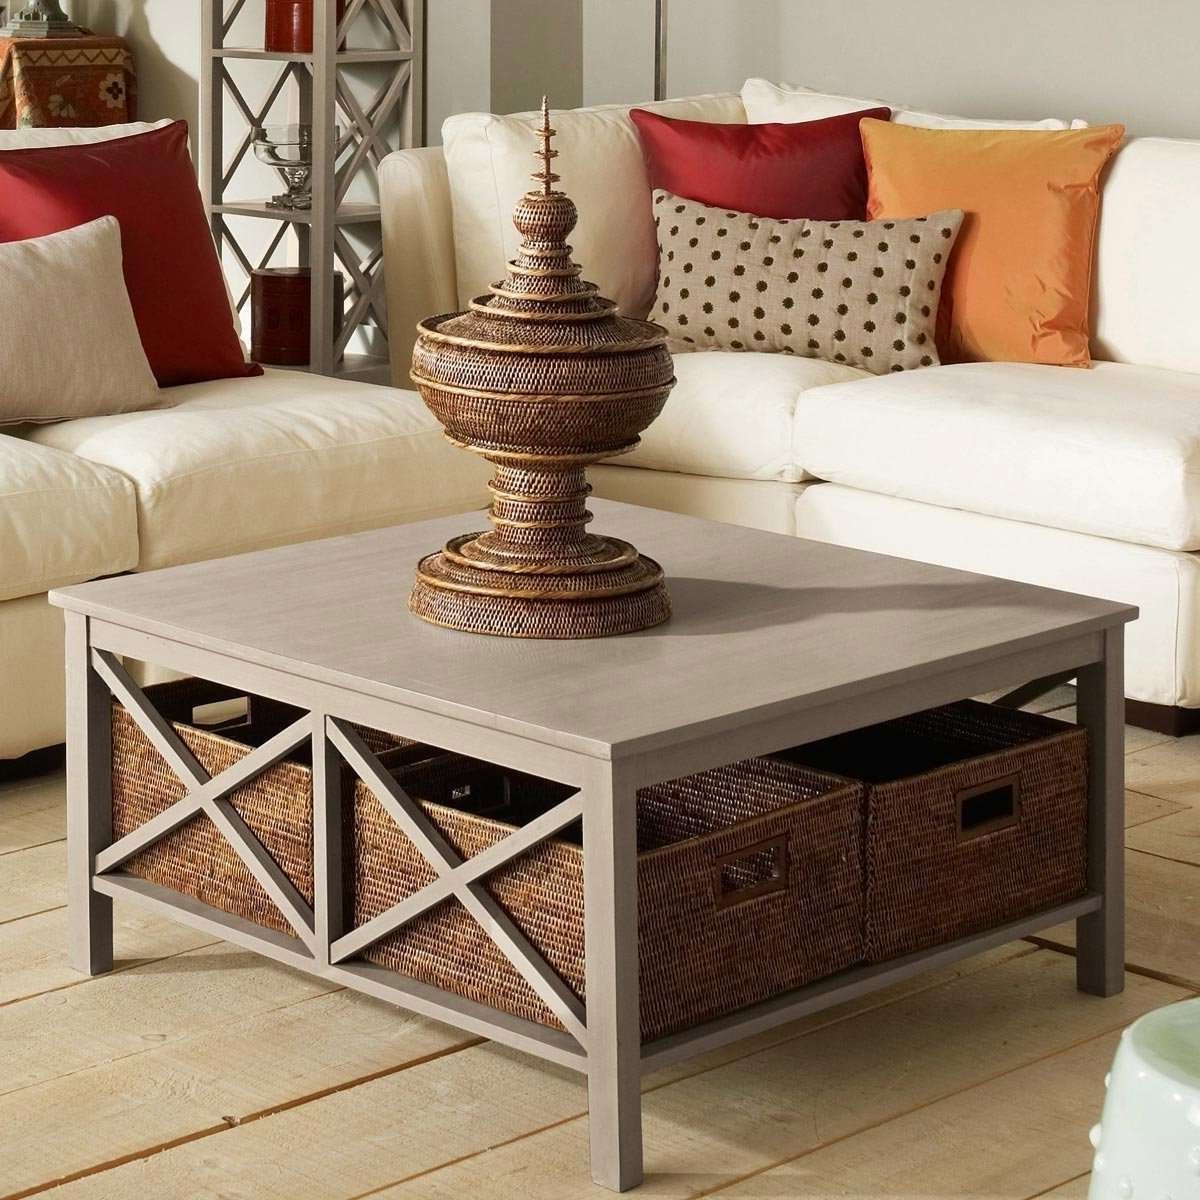 Famous Large Square Coffee Table With Storage With Square Coffee Table With Storage More Than One Function In One (View 3 of 20)